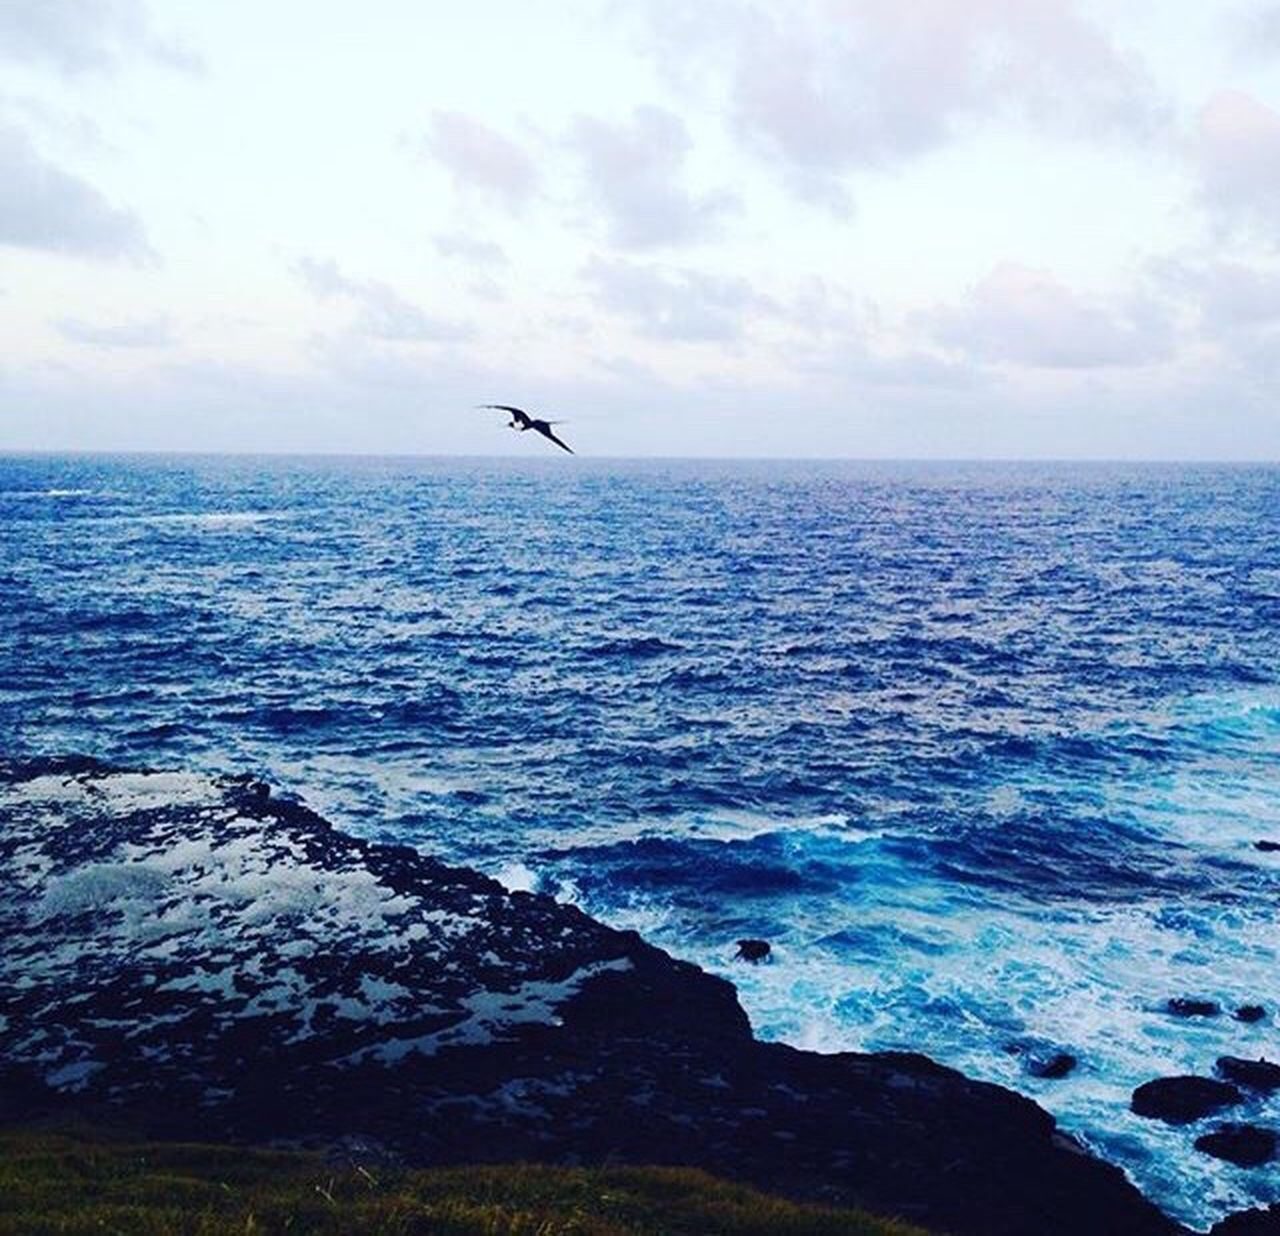 sea, horizon over water, one animal, nature, beauty in nature, water, animals in the wild, animal themes, scenics, sky, mid-air, tranquil scene, flying, outdoors, day, bird, cloud - sky, no people, spread wings